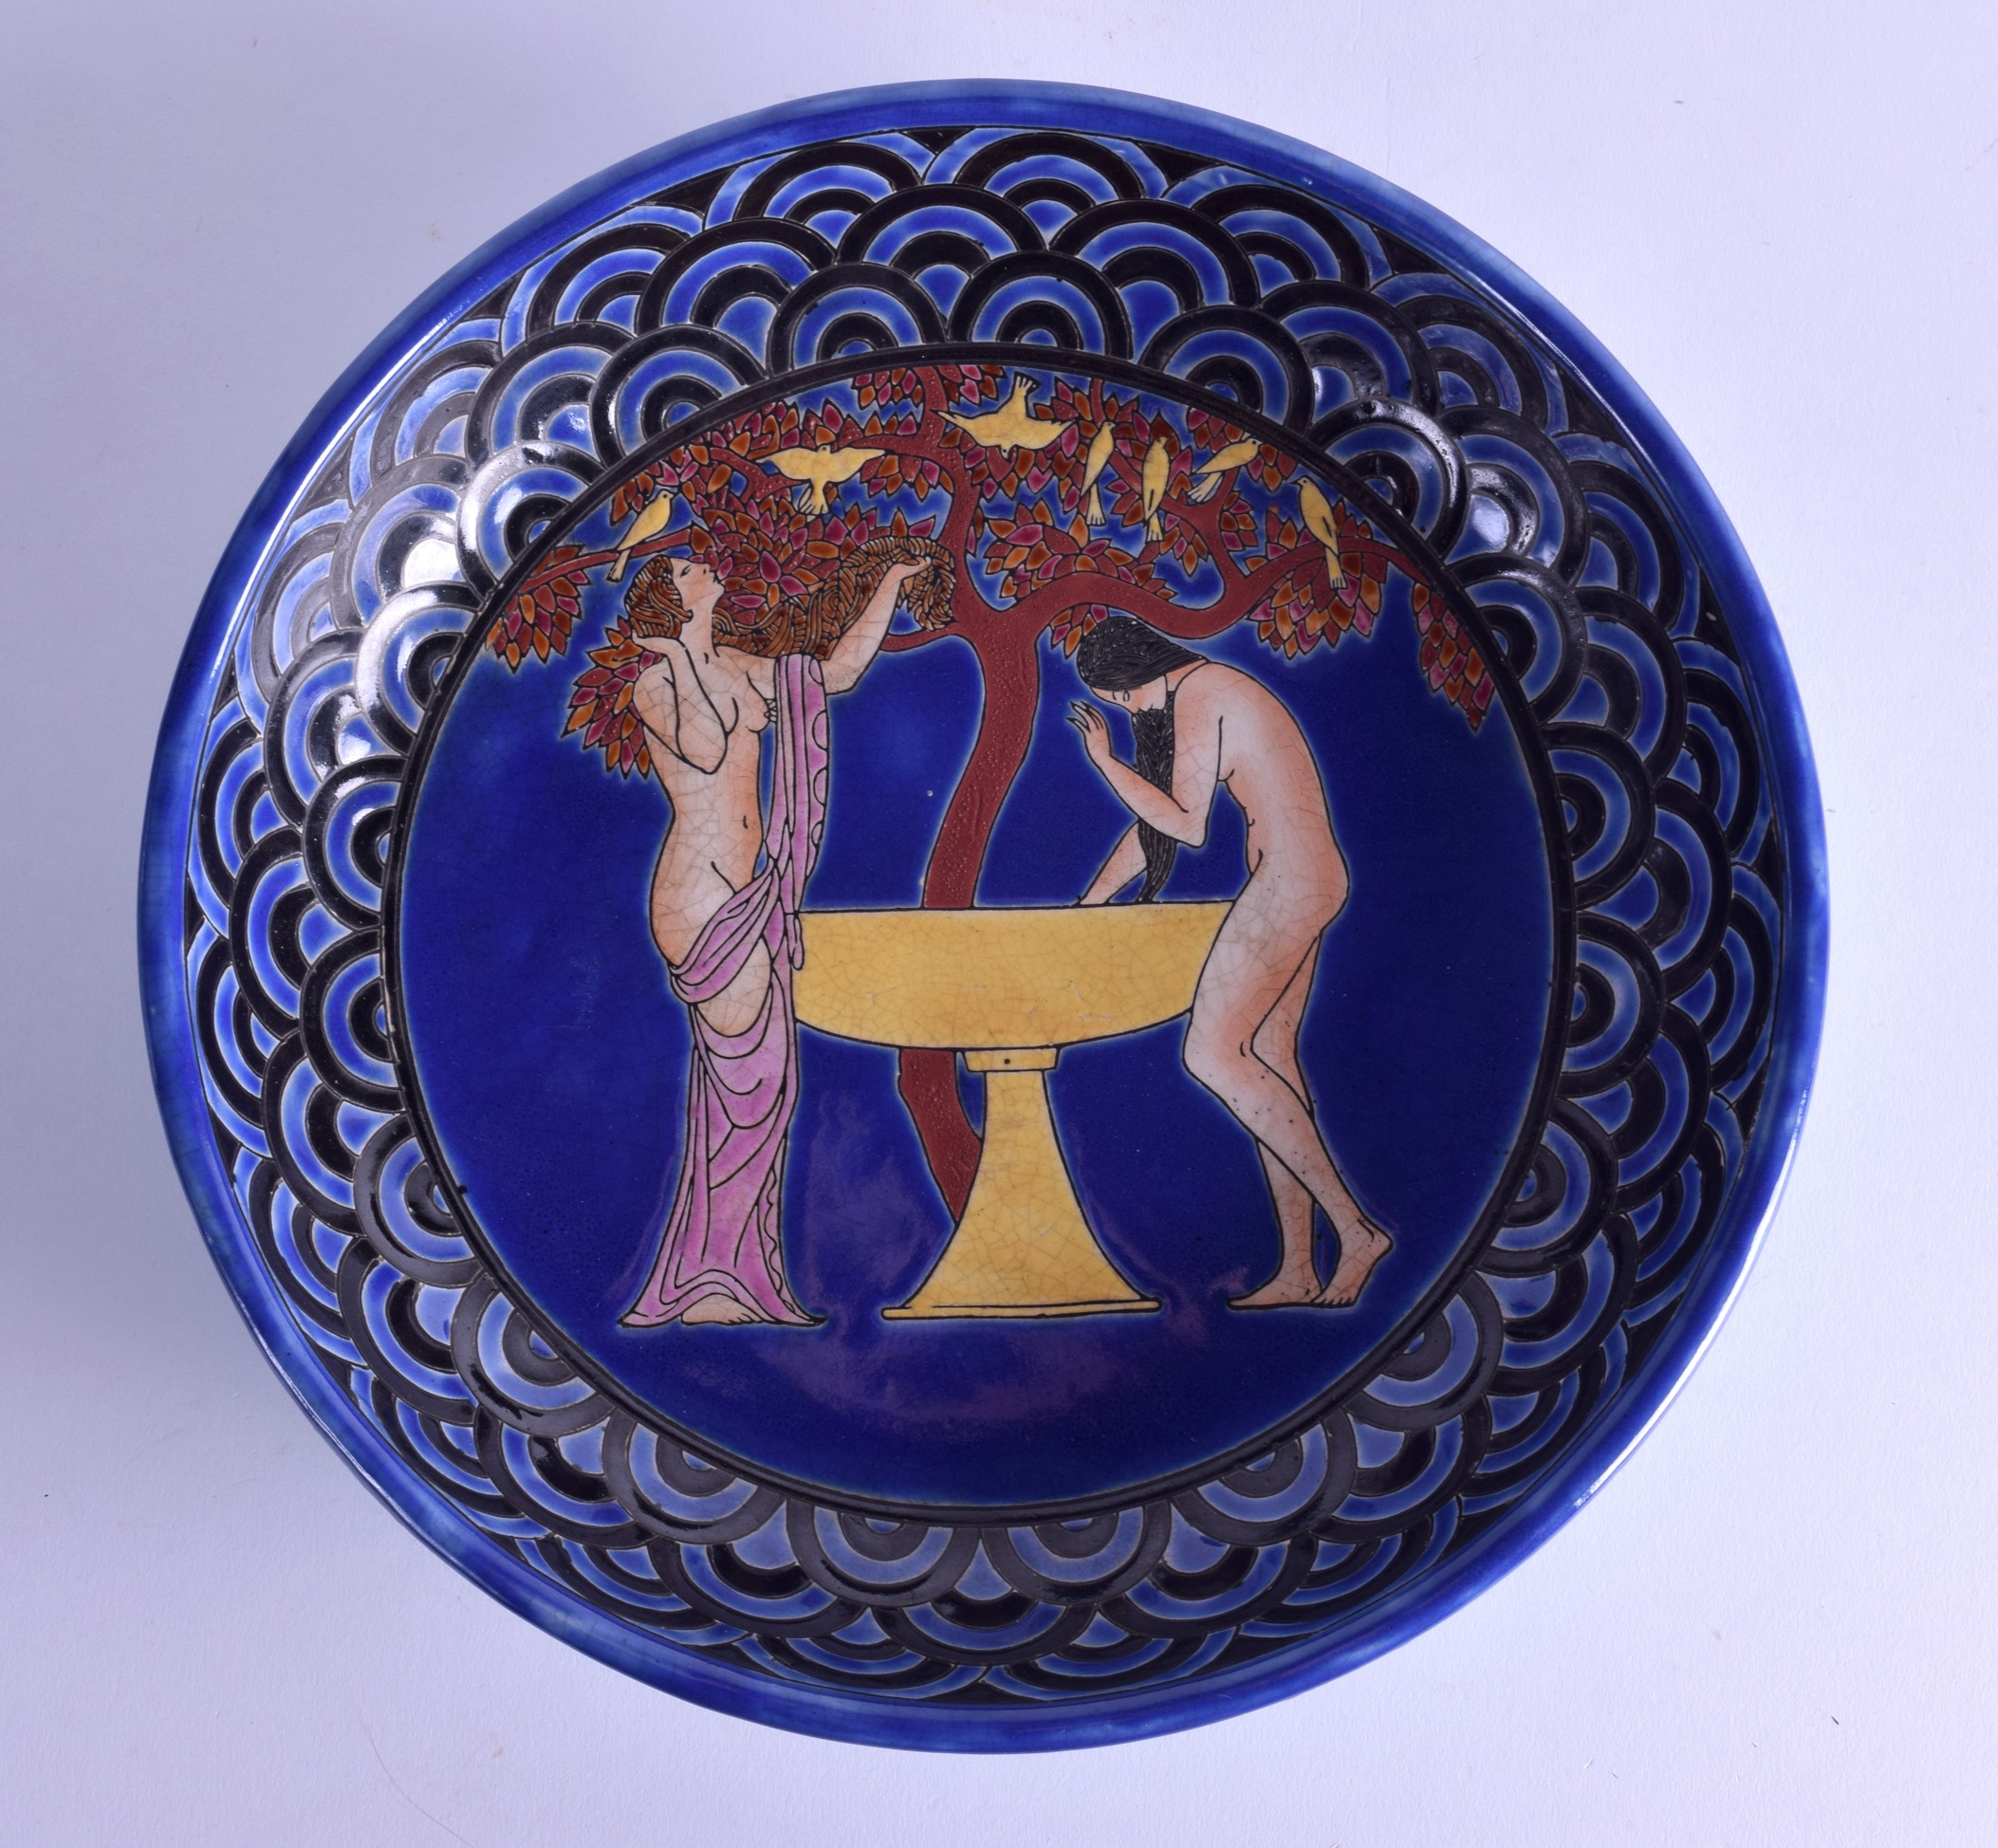 Lot 102 - AN ART DECO FRENCH KERALOUVE CIRCULAR POTTERY BOWL painted with two nude bathing females beside a